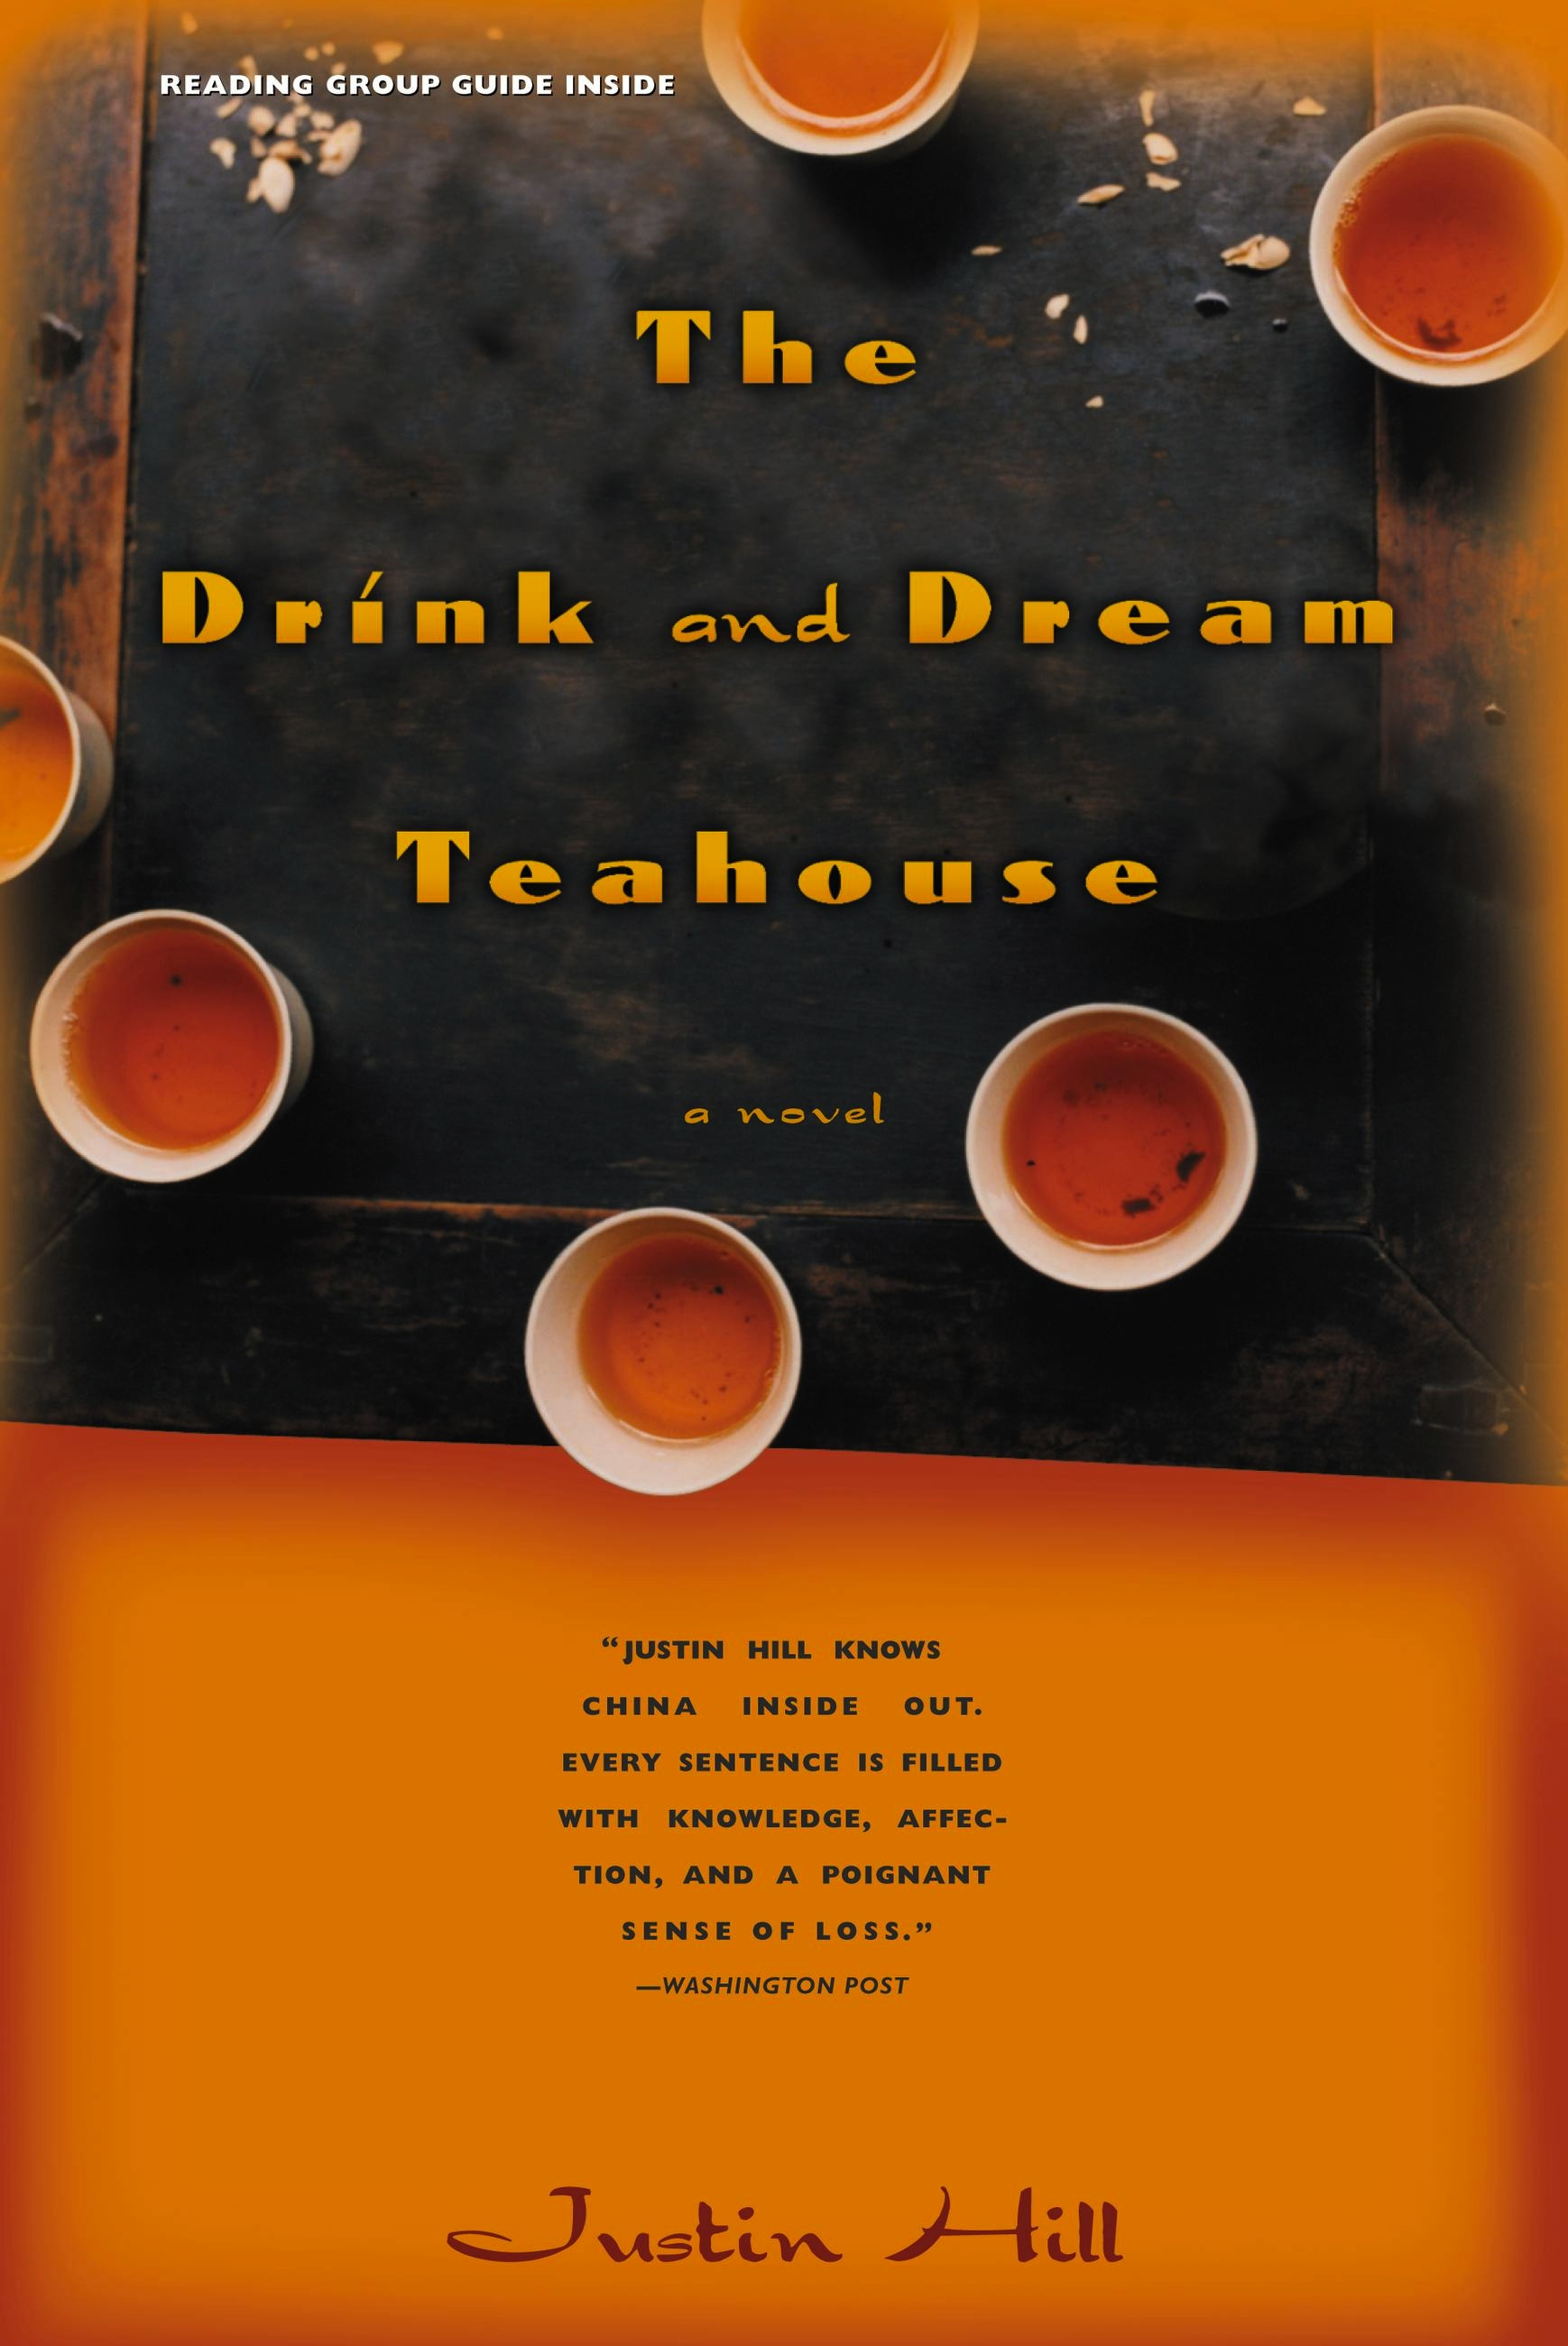 Drink and Dream Tea House, The